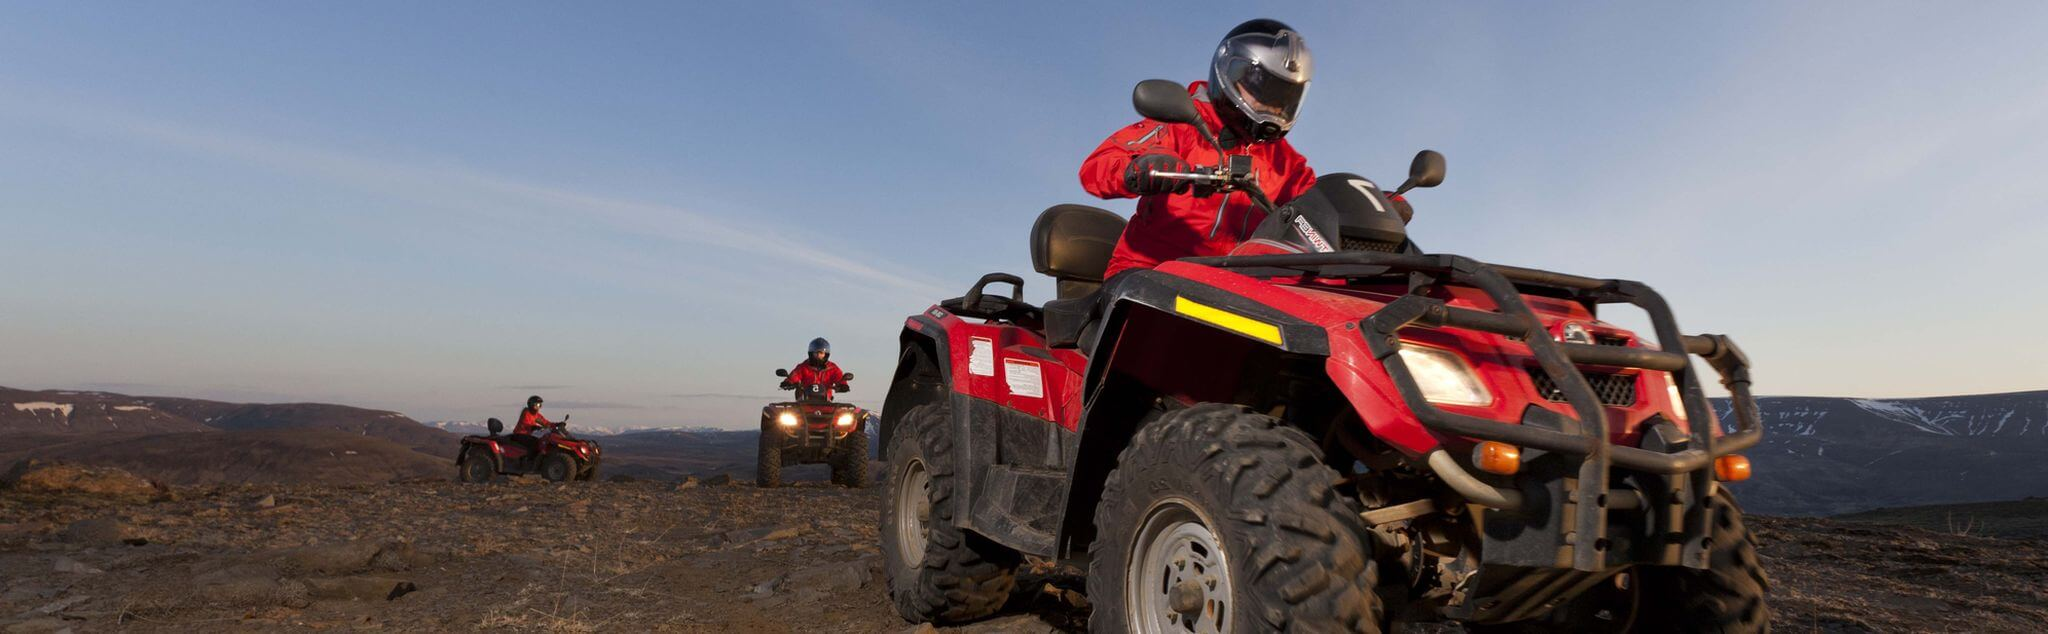 Quad Biking in Aldeatejada